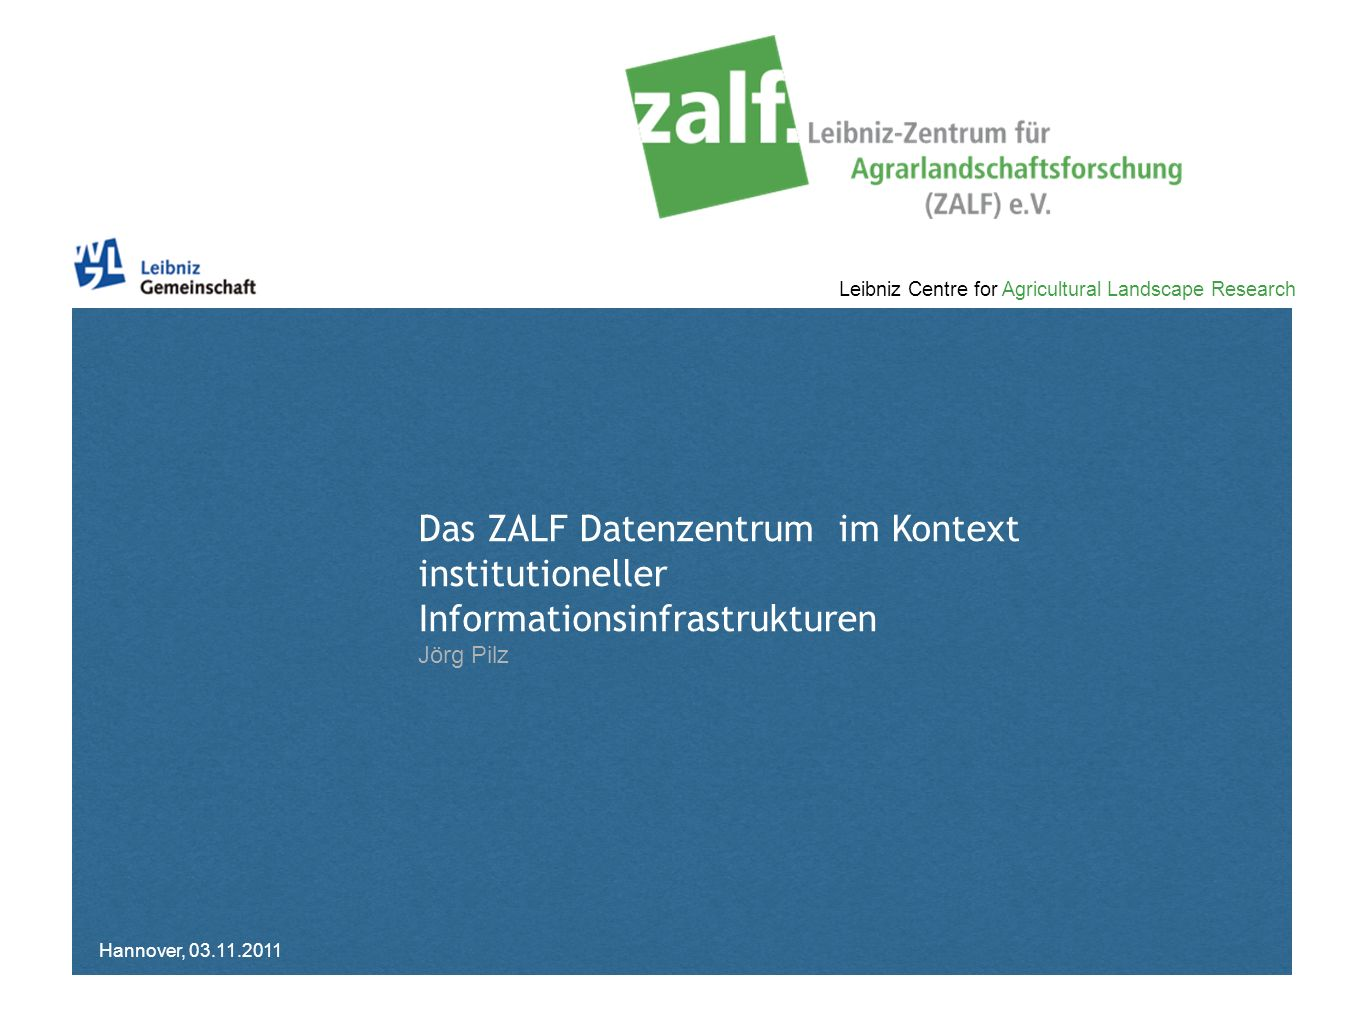 Das ZALF Datenzentrum im Kontext institutioneller Informationsinfrastrukturen